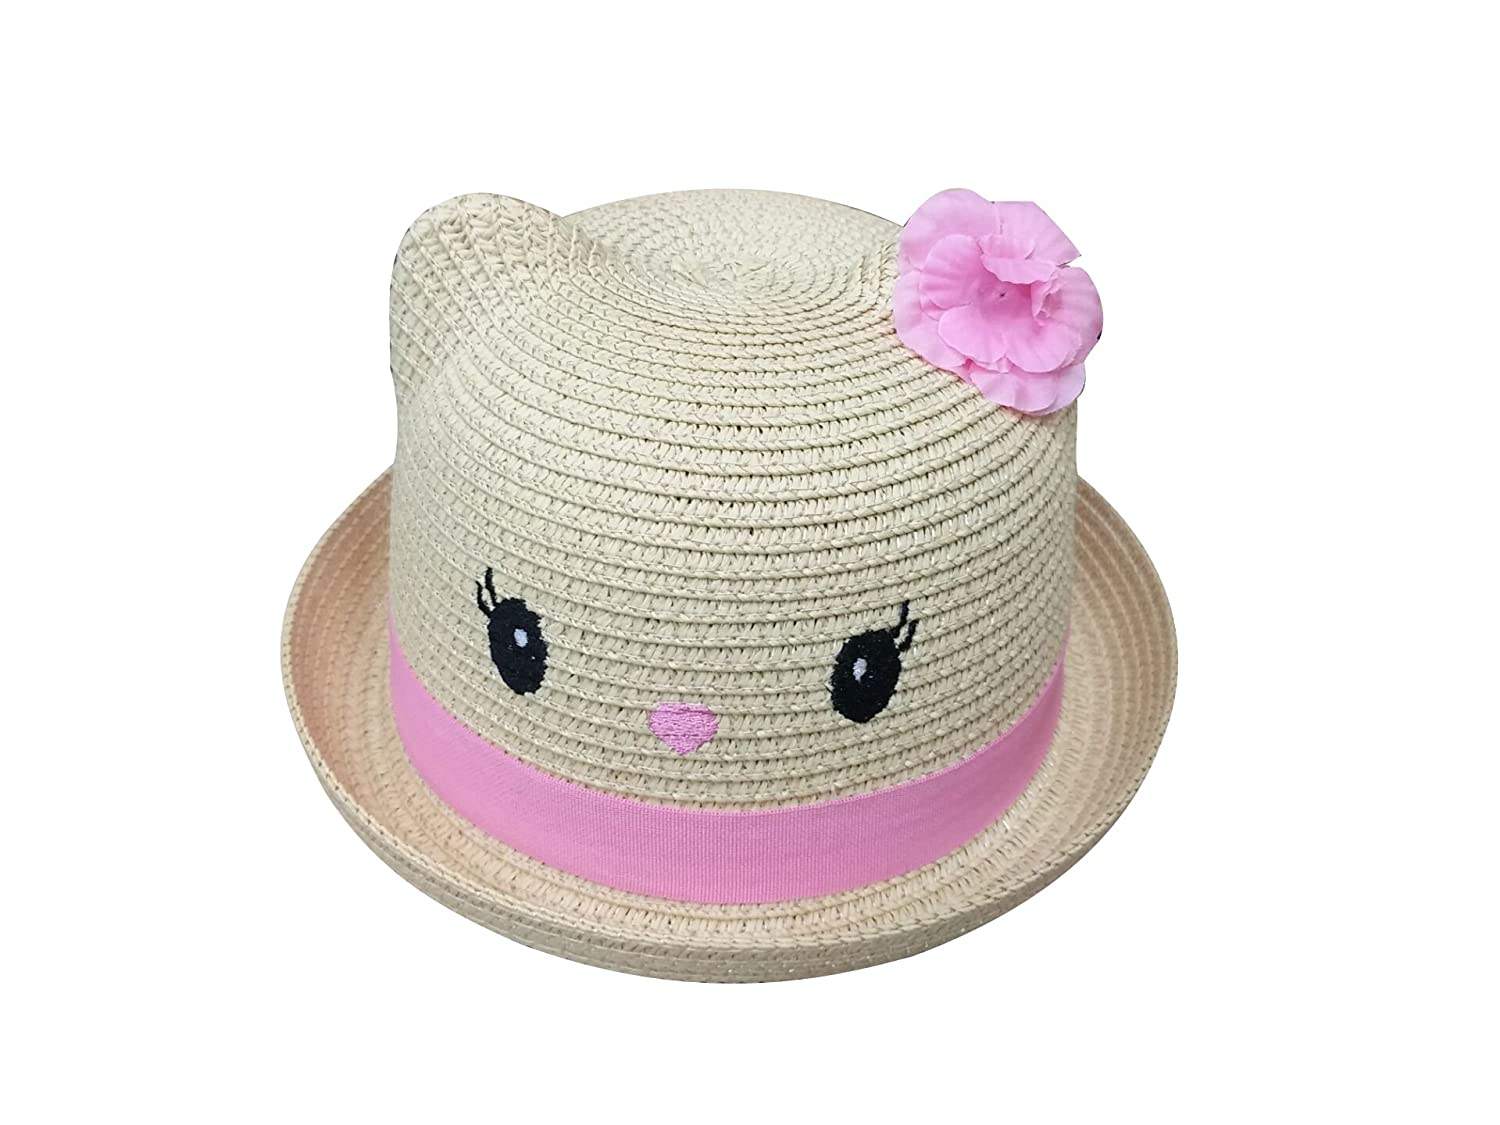 ACVIP Little Girls Straw Roll Up Sun Hat with Cat Ears